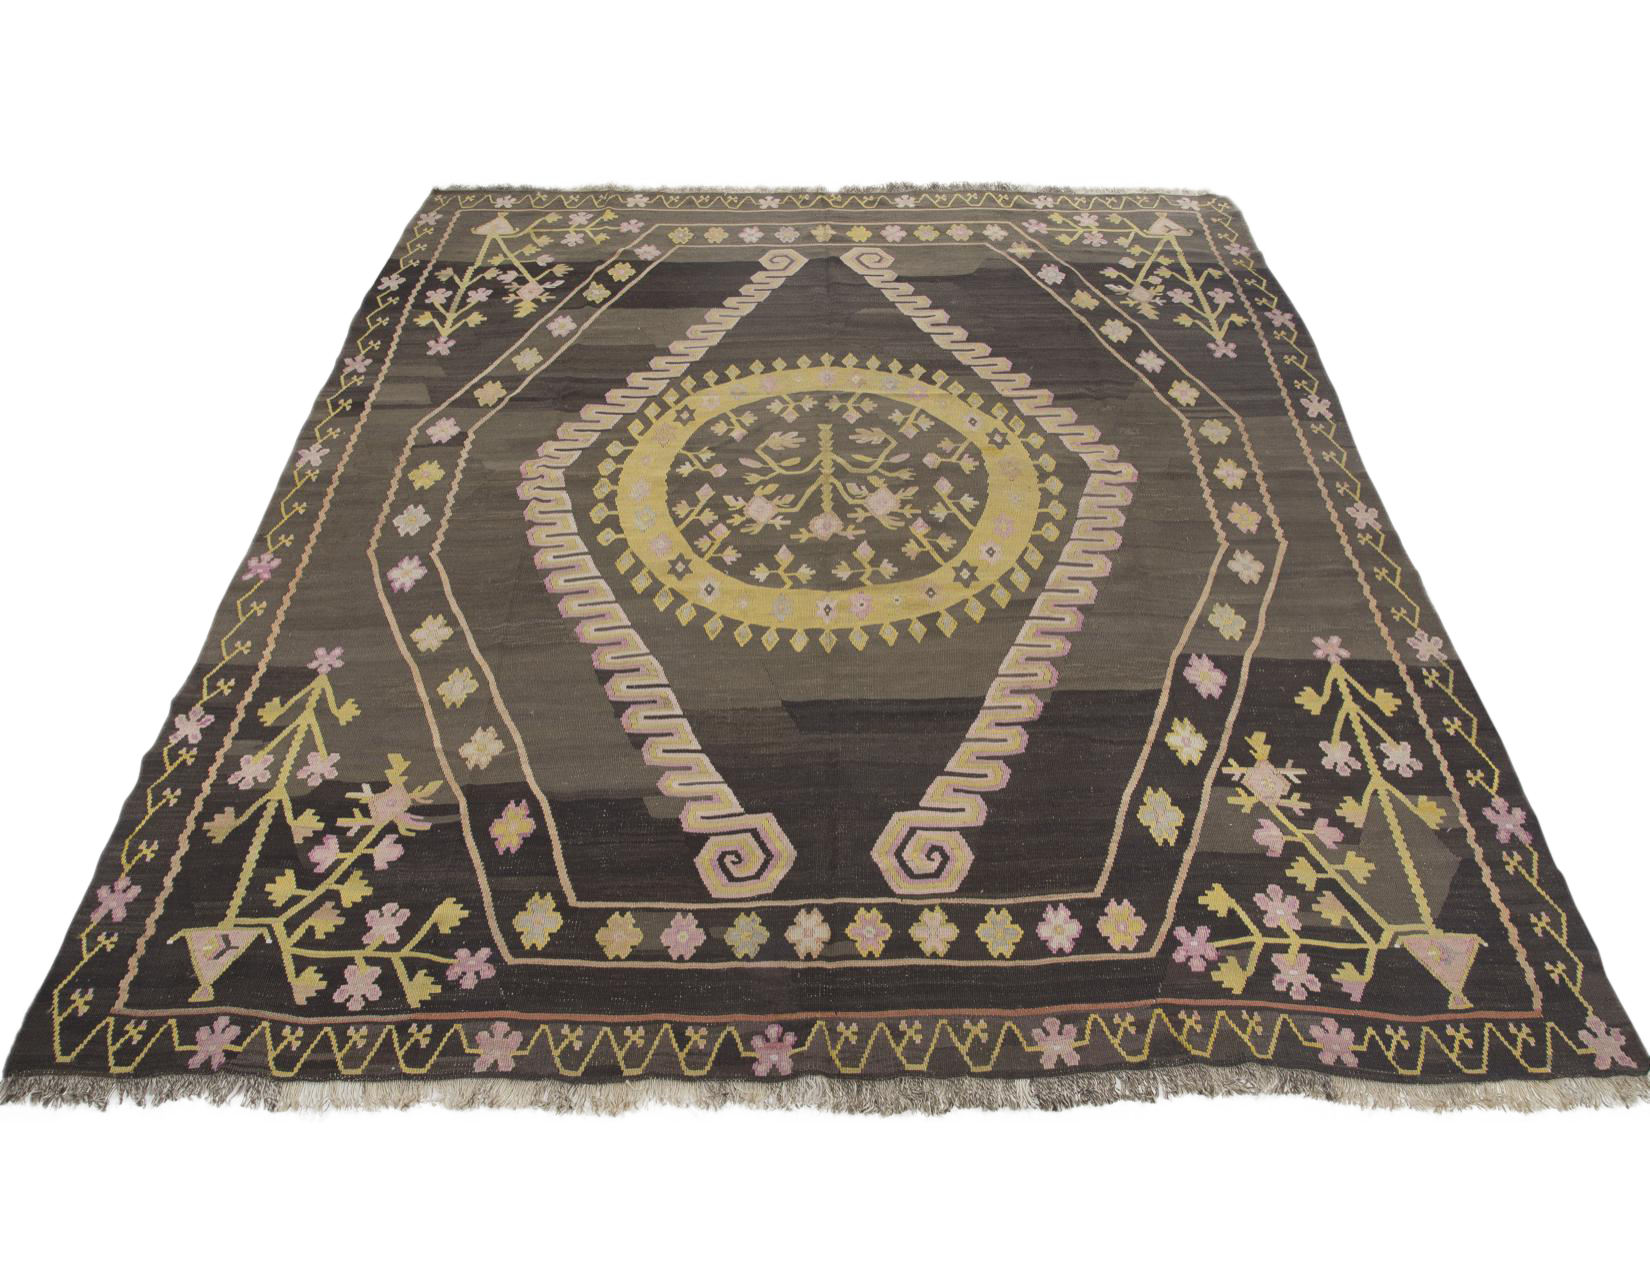 Turkish Wool Kilim Rug 9 8 215 10 6 Chairish